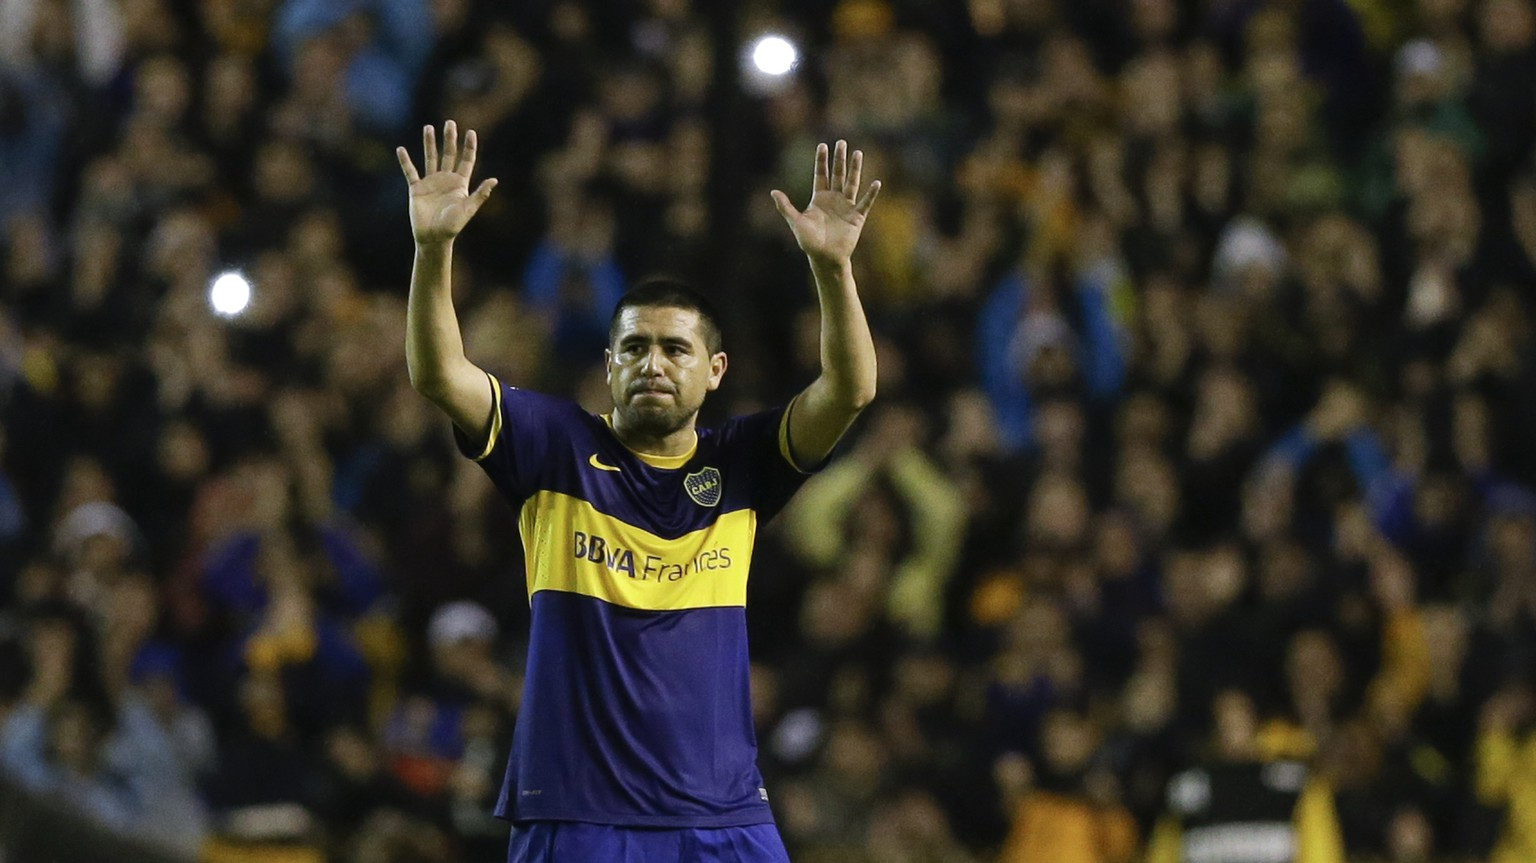 Boca Juniors' Juan Roman Riquelme leaves the field during an Argentine league soccer match against Lanus in Buenos Aires, Argentina, Sunday, May 11, 2014. If Boca Juniors's club decides not to renew Riquelme's contract, this was Riquelme's last match at the